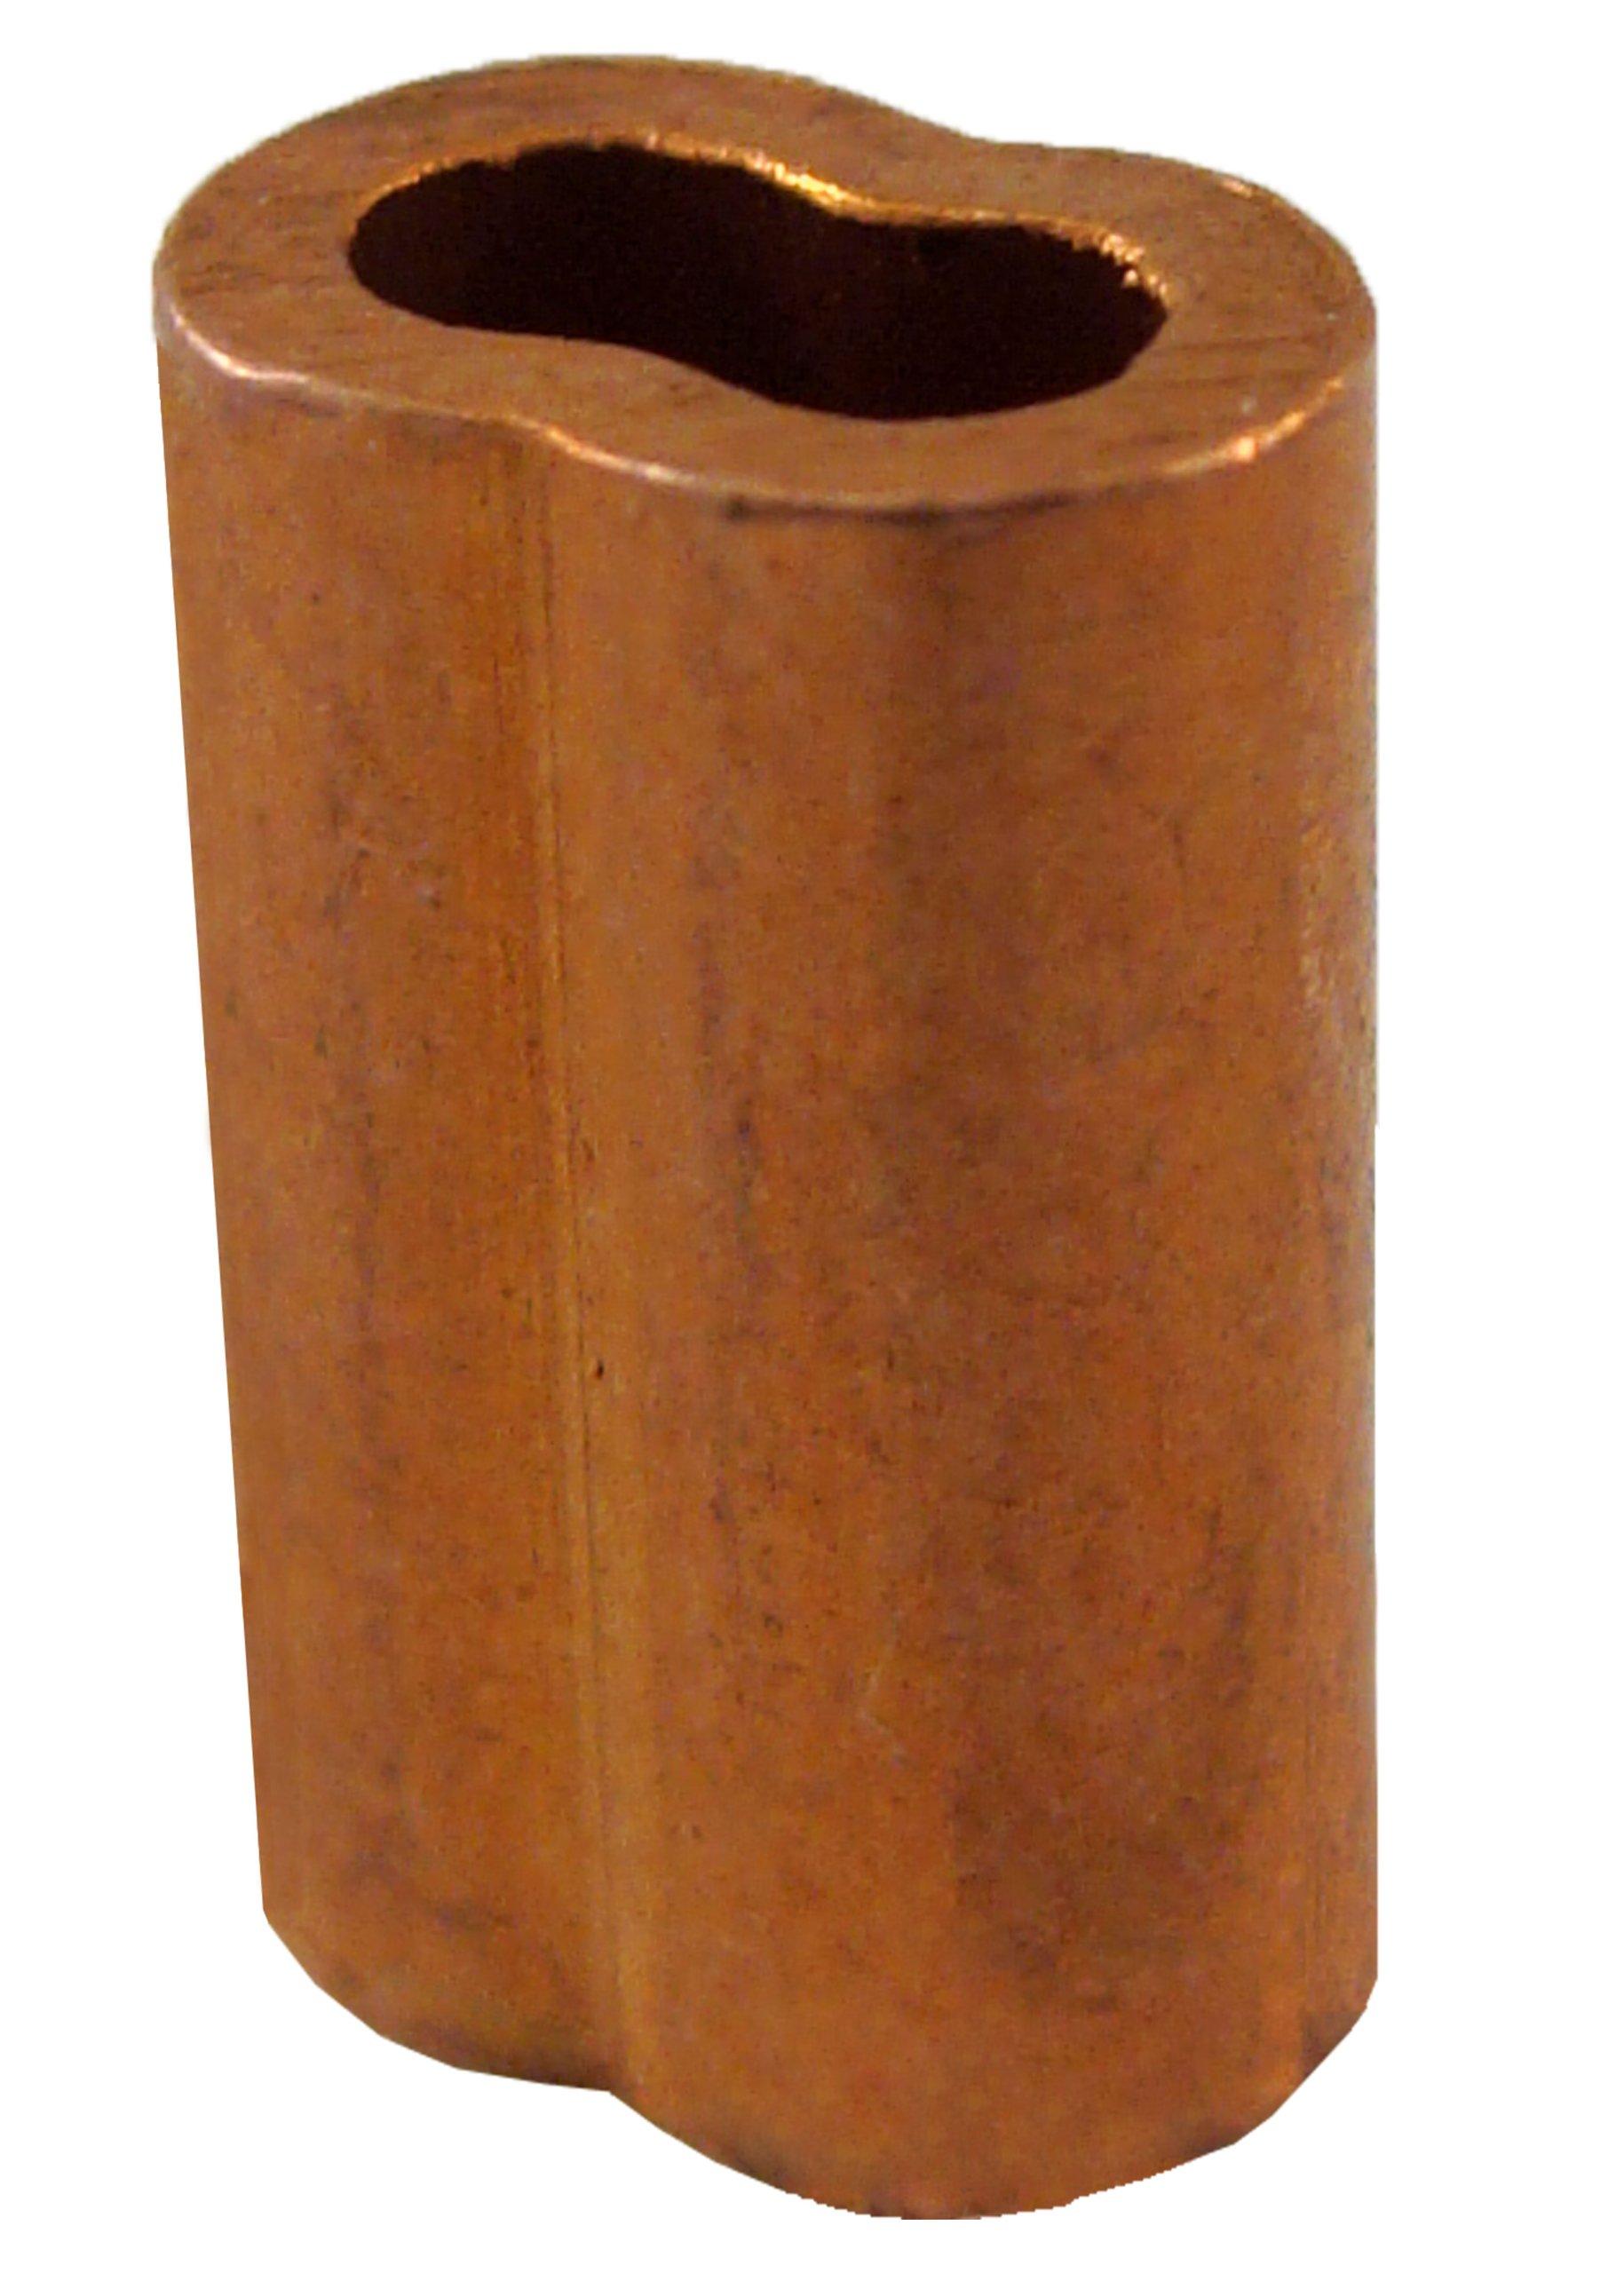 Loos Cableware SL2-3 Plain Copper Duplex Oval Crimping Sleeve Set for 3/32'' Diameter Wire Rope (50 Piece)